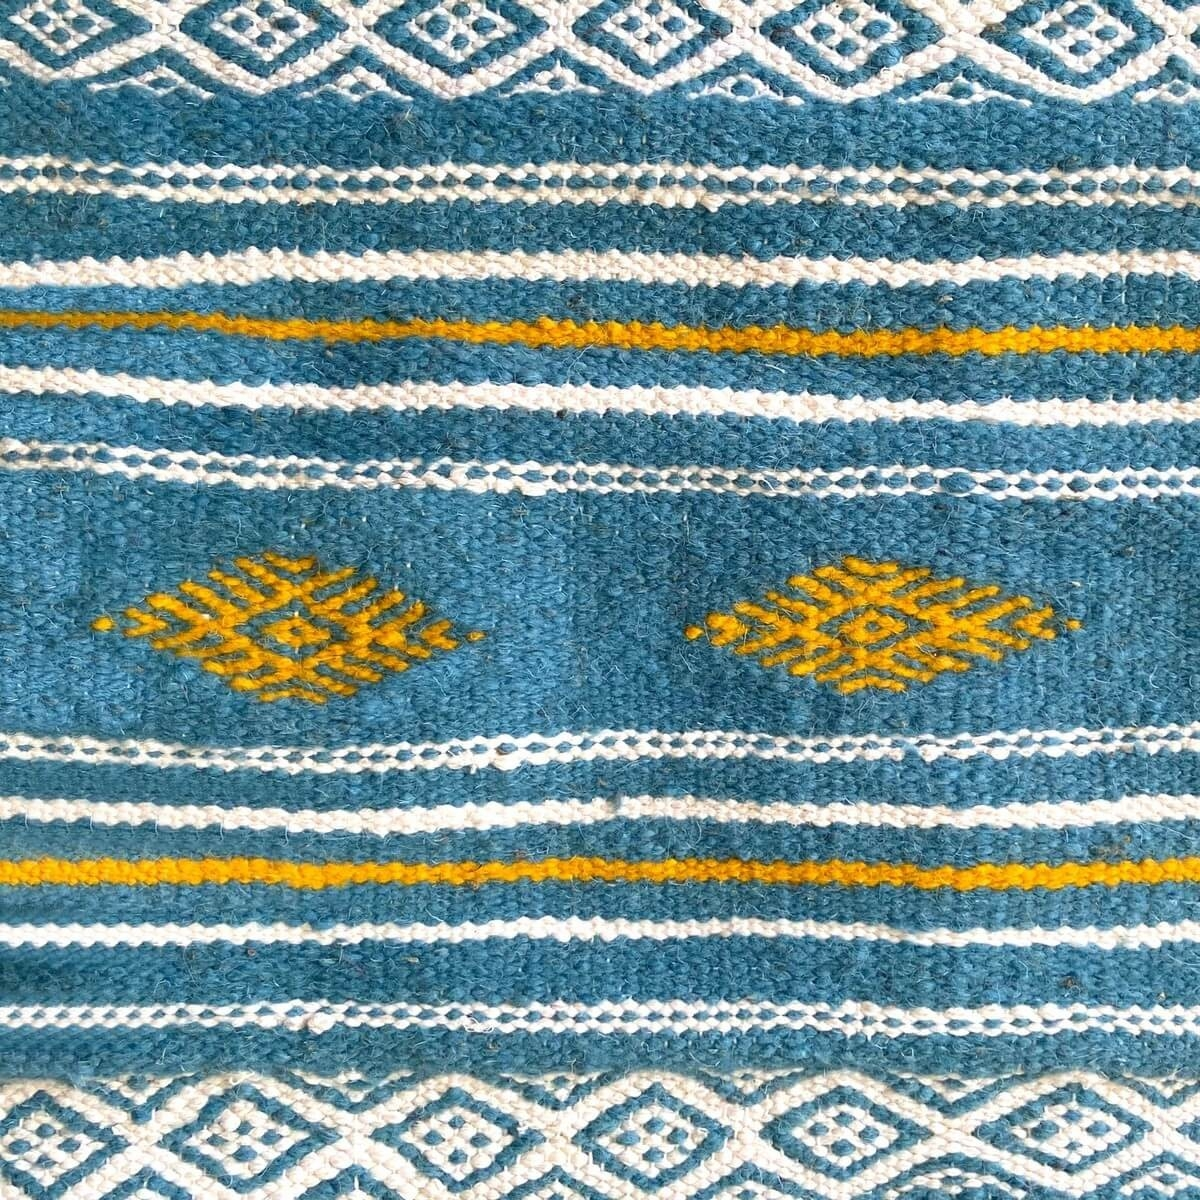 Berber carpet Rug Kilim Oued Zitoun 136x244 Blue turquoise/Yellow/Red (Handmade, Wool) Tunisian Rug Kilim style Moroccan rug. Re